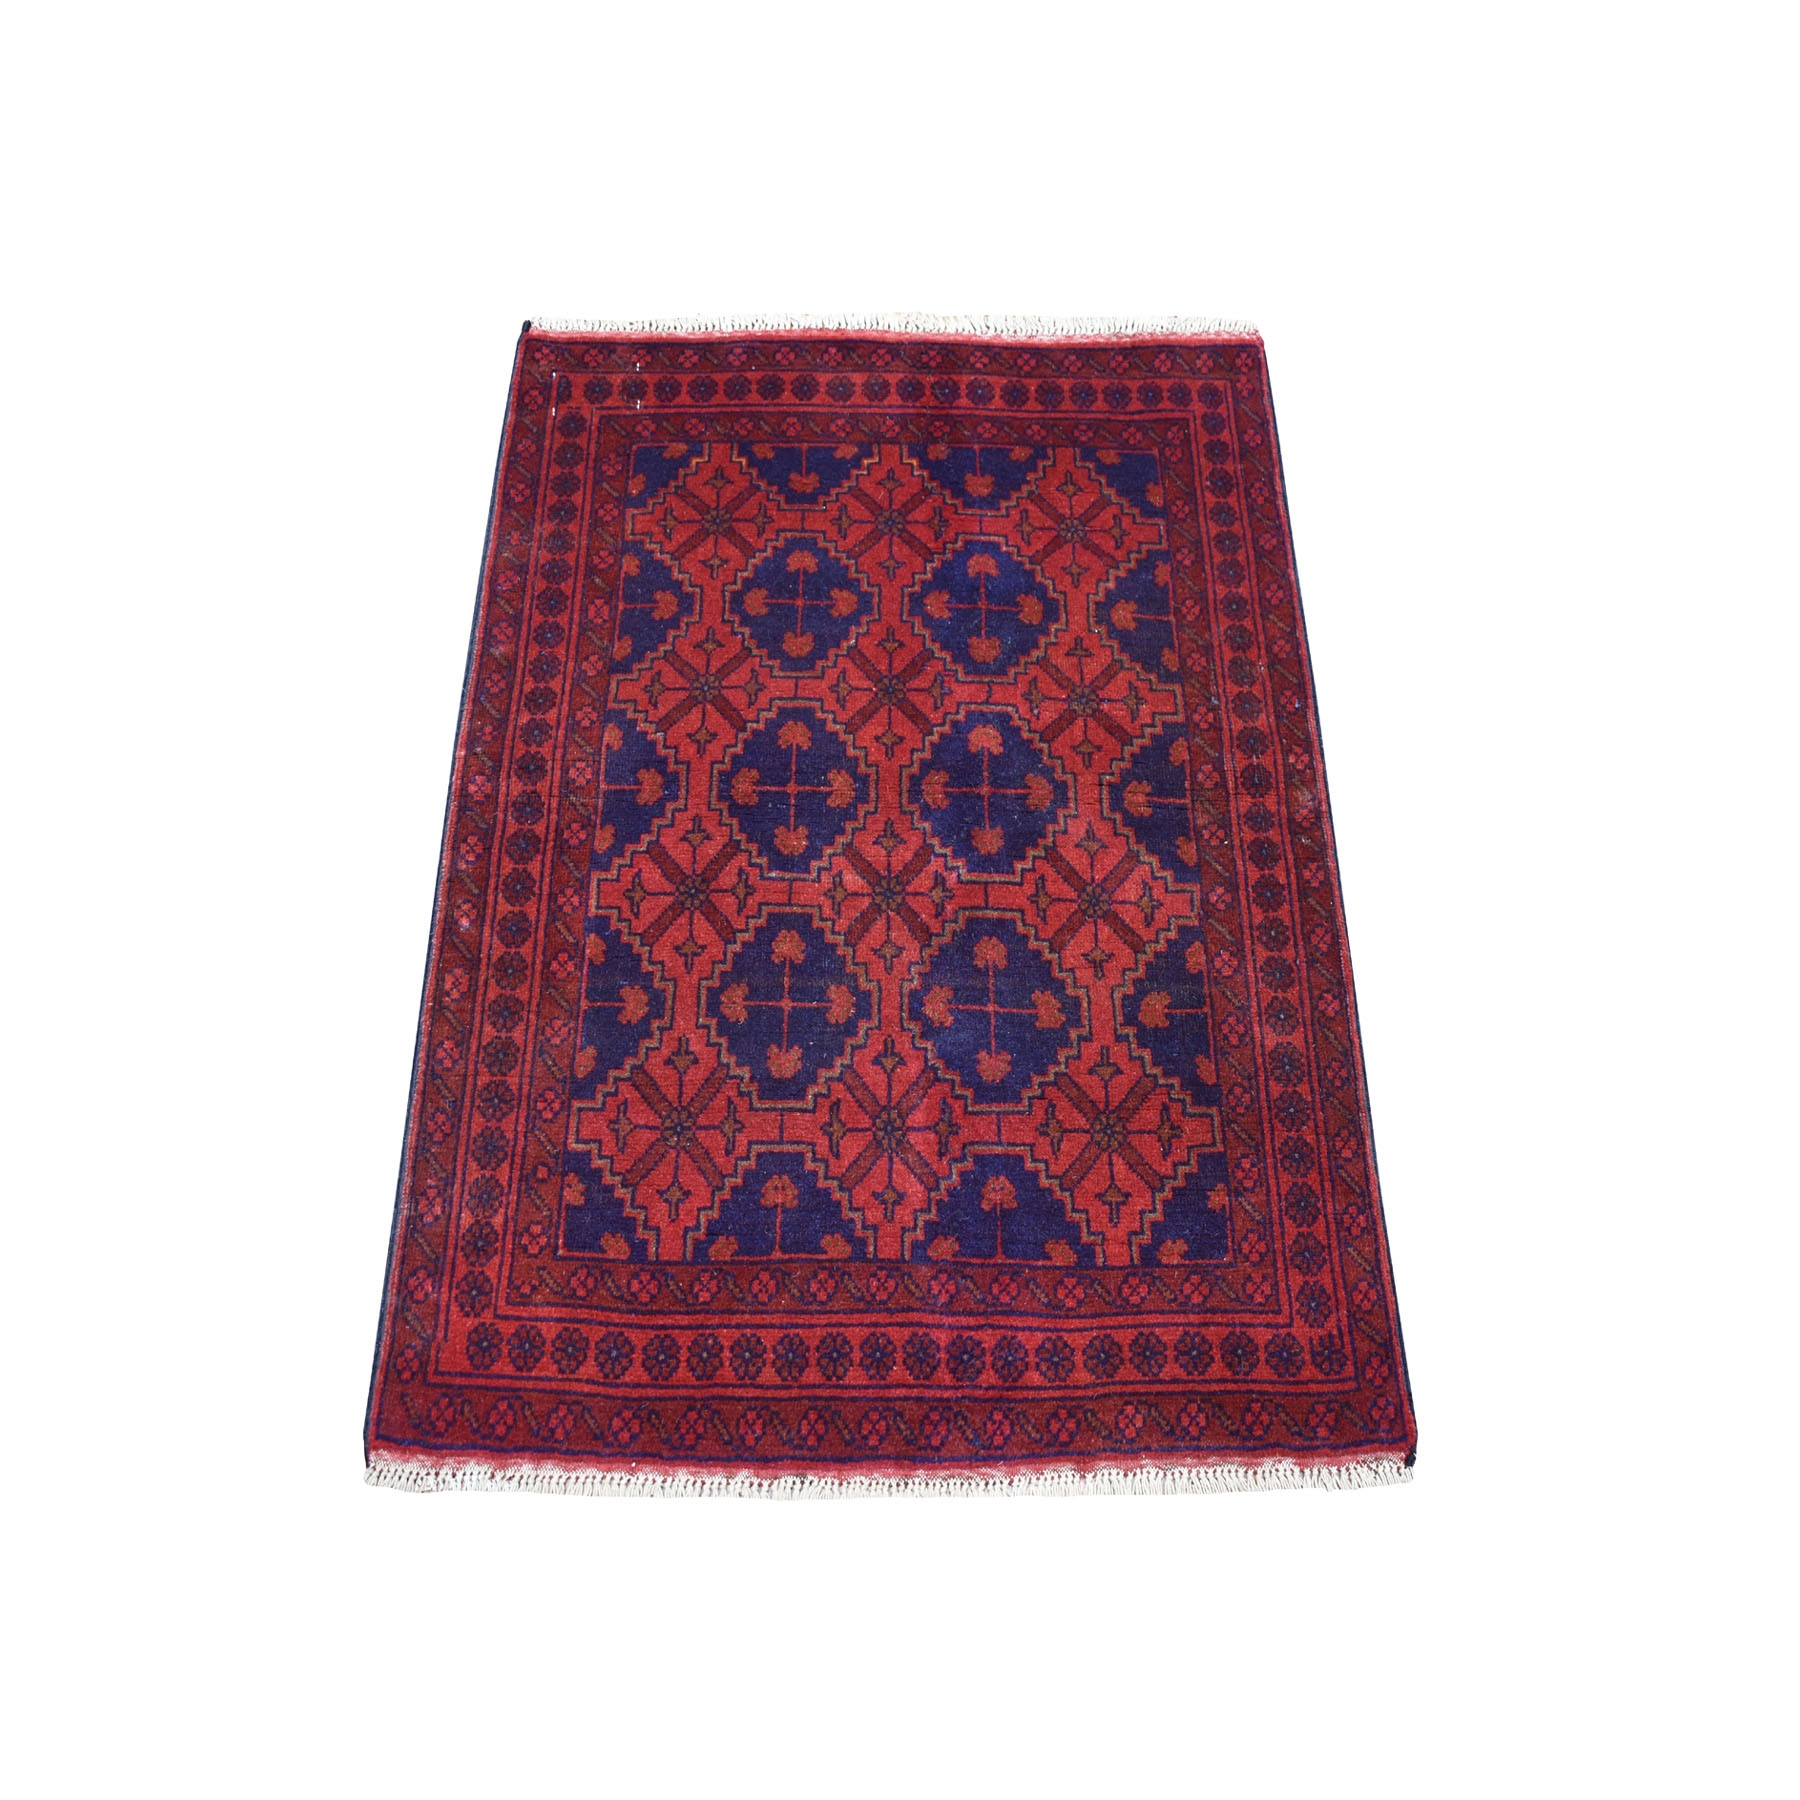 "2'8""x3'9"" Deep and Saturated Red Geometric Afghan Andkhoy Pure Wool Hand Woven Oriental Rug"